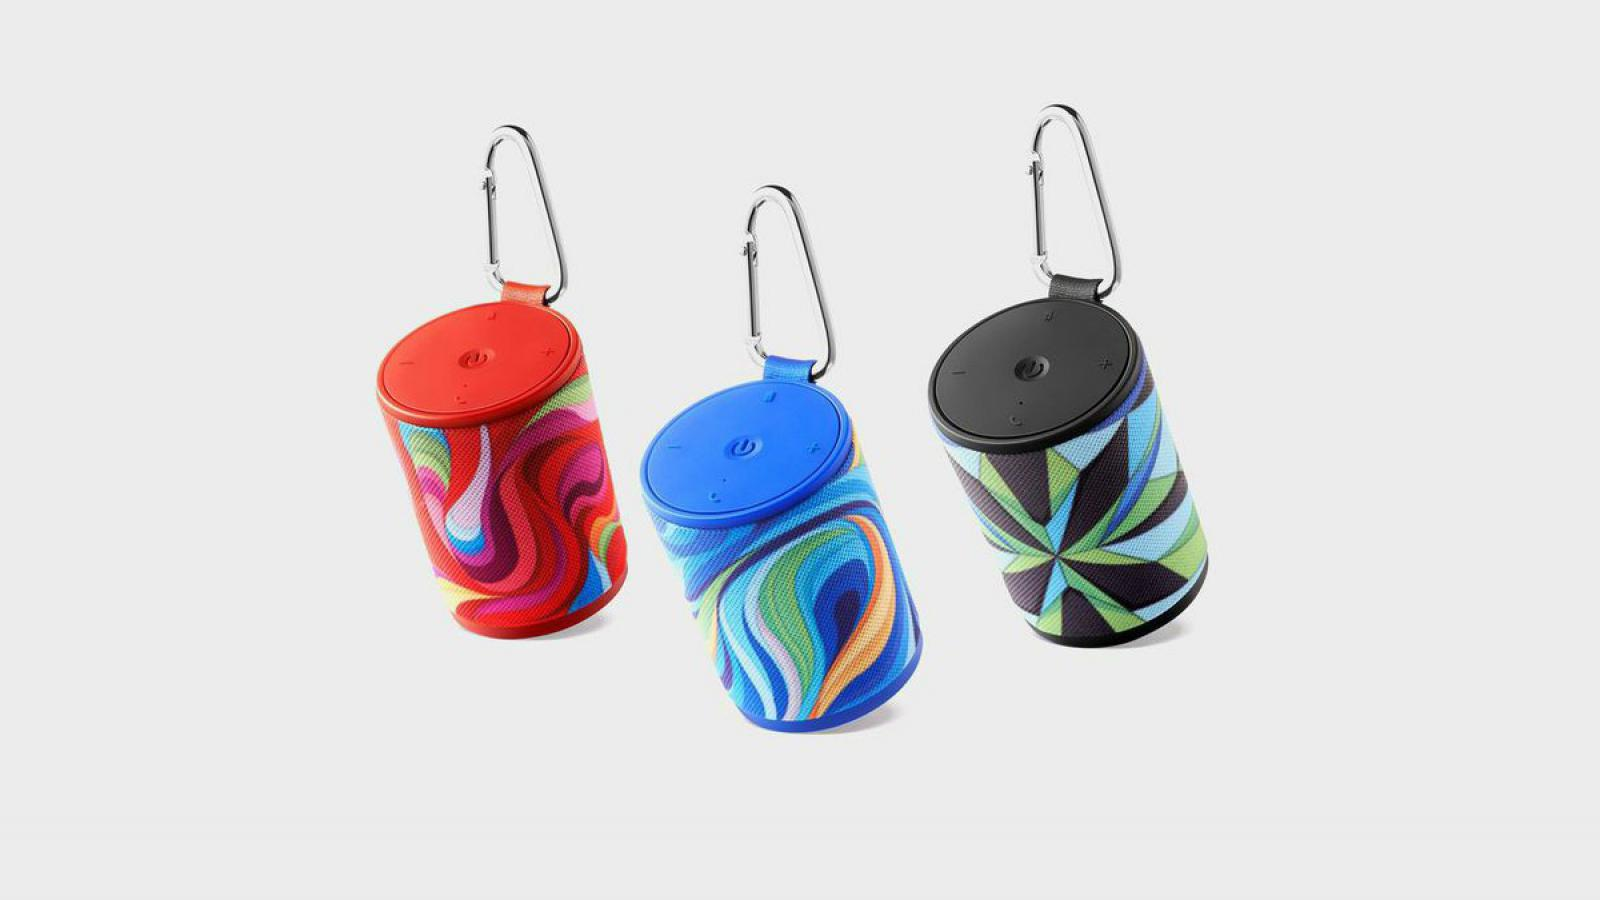 X-Pop Bluetooth Speakers by Radim Malinic